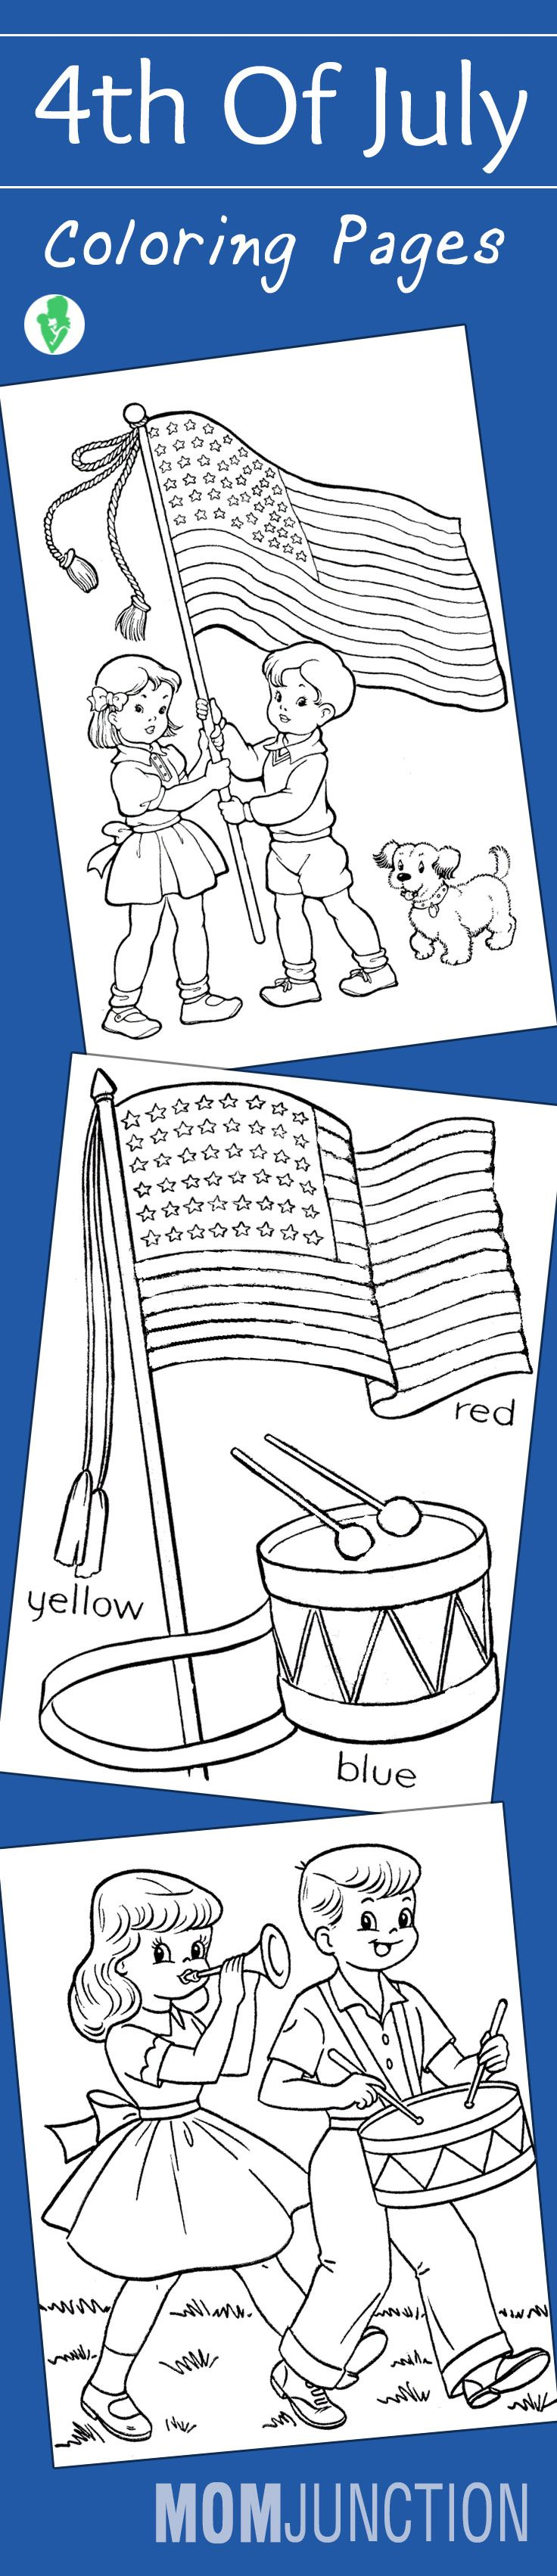 Coloring pages for dots for 4 of july - Top 35 Free Printable 4th Of July Coloring Pages Online